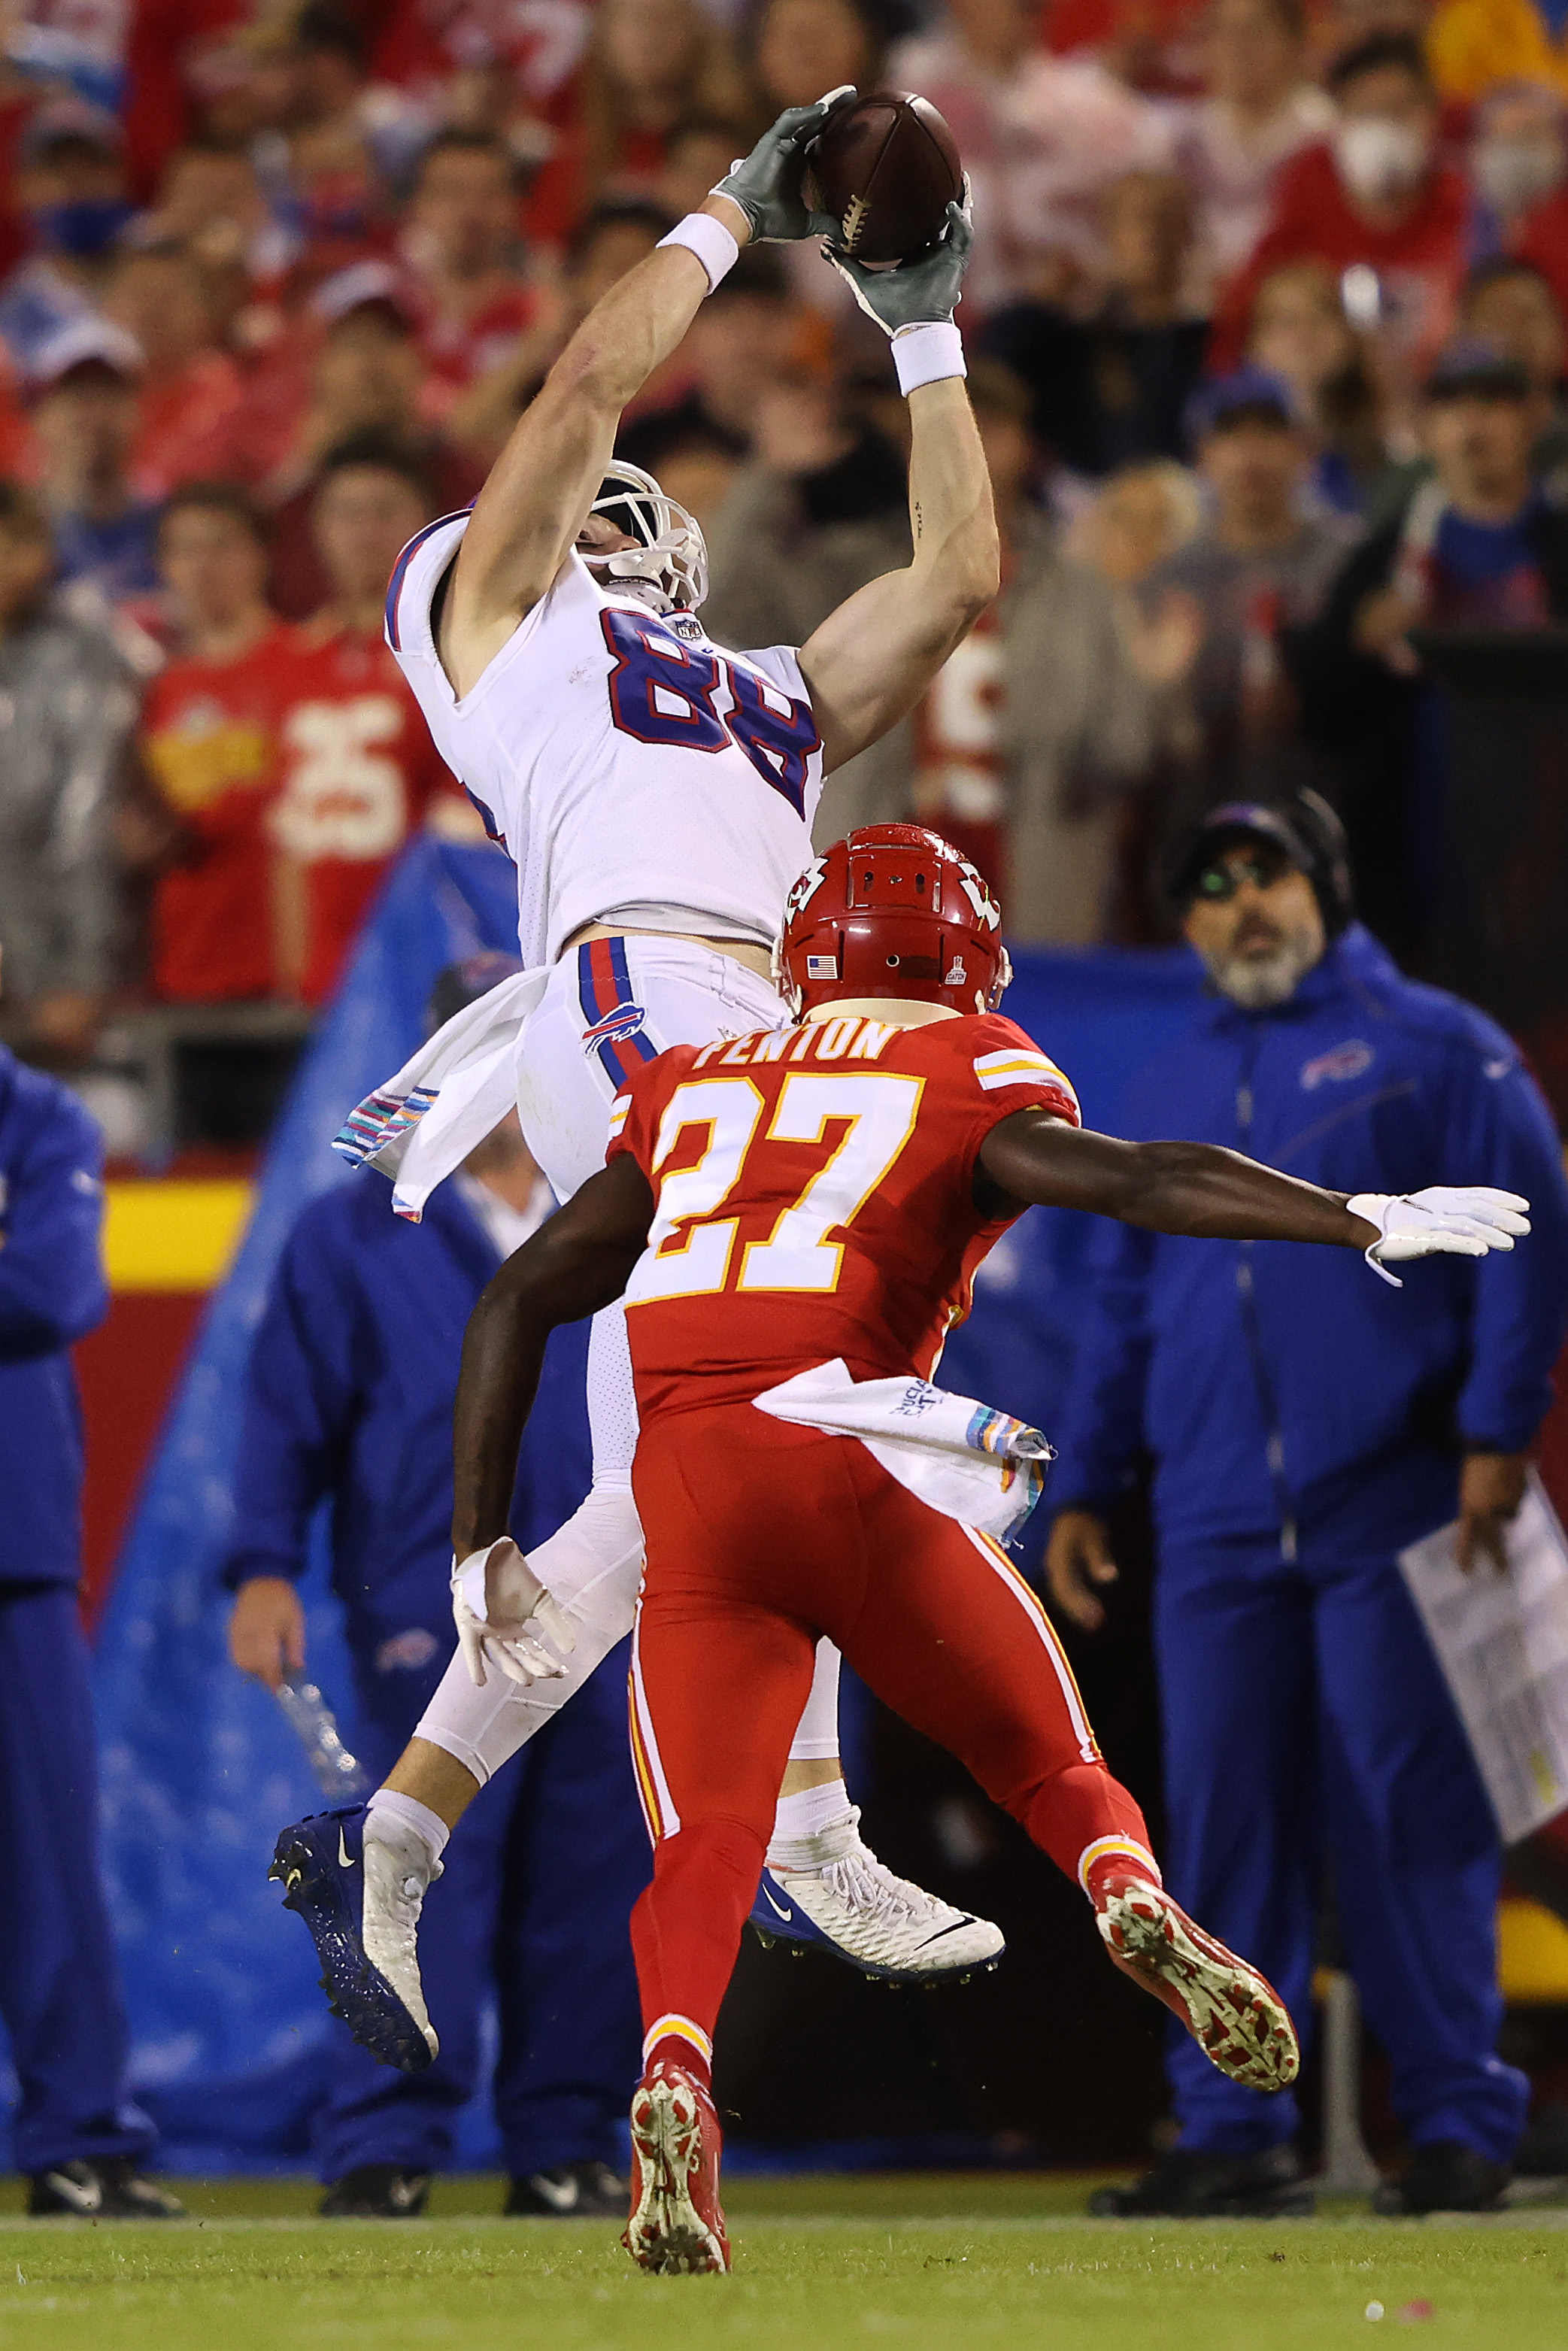 Dawson Knox #88 of the Buffalo Bills makes a reception past the defense of Rashad Fenton #27 of the Kansas City Chiefs during the second half of a game at Arrowhead Stadium on October 10, 2021 in Kansas City, Missouri.